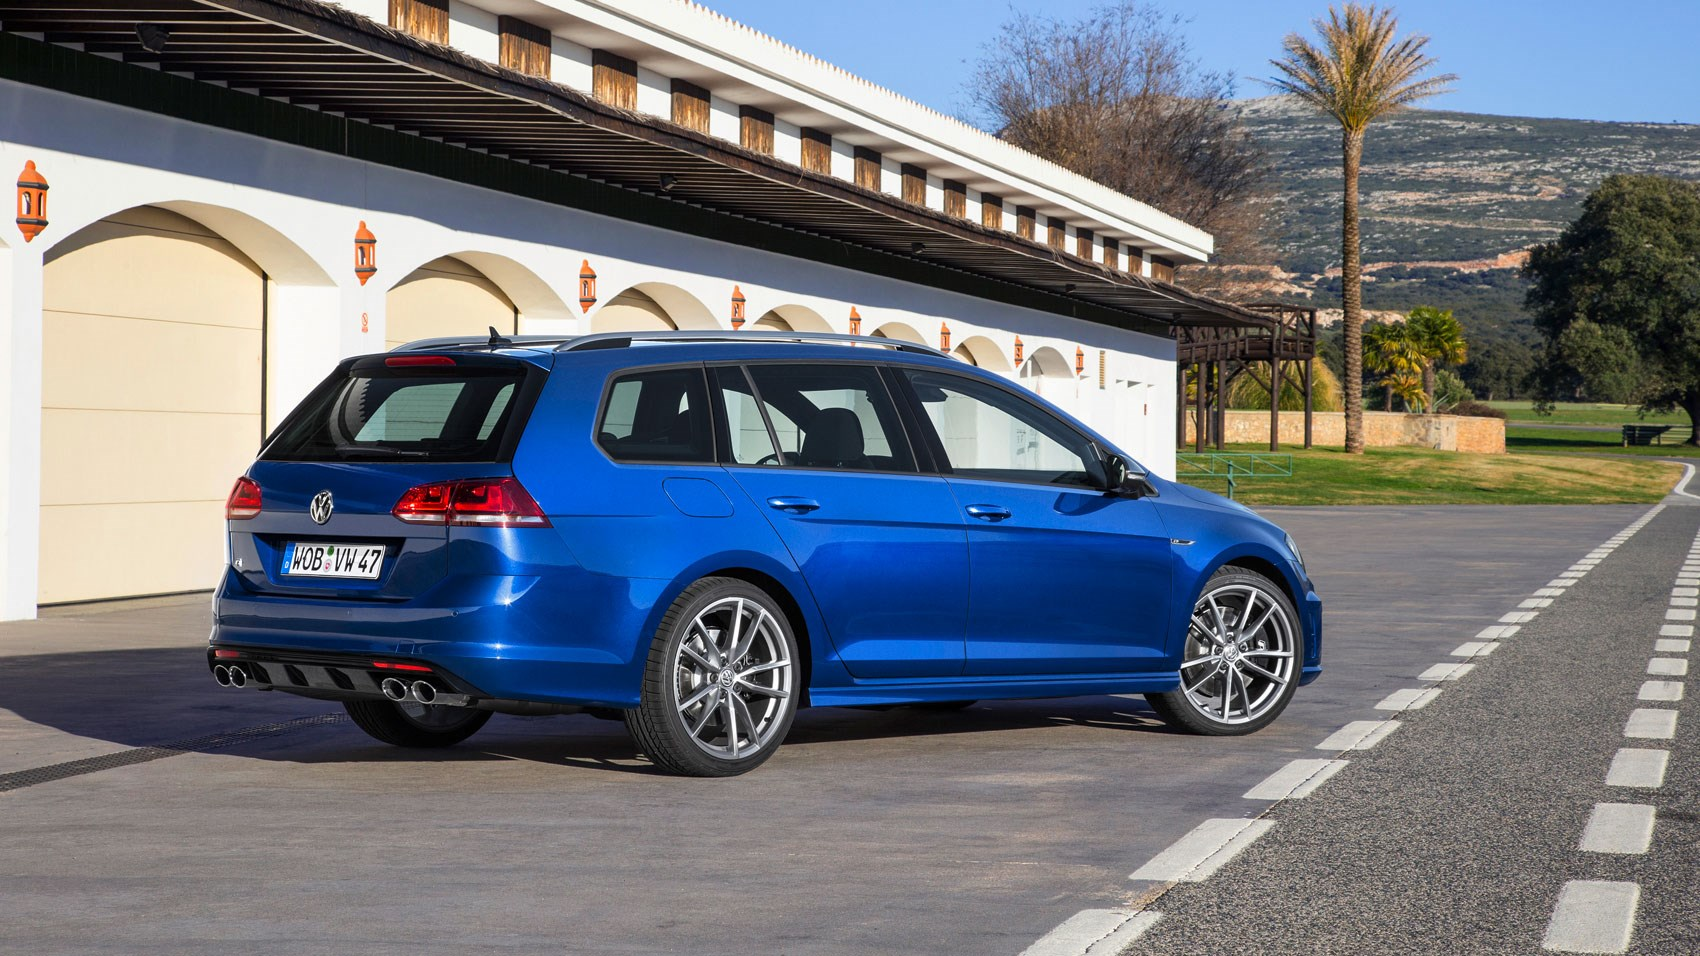 vw golf r estate 2015 review by car magazine. Black Bedroom Furniture Sets. Home Design Ideas